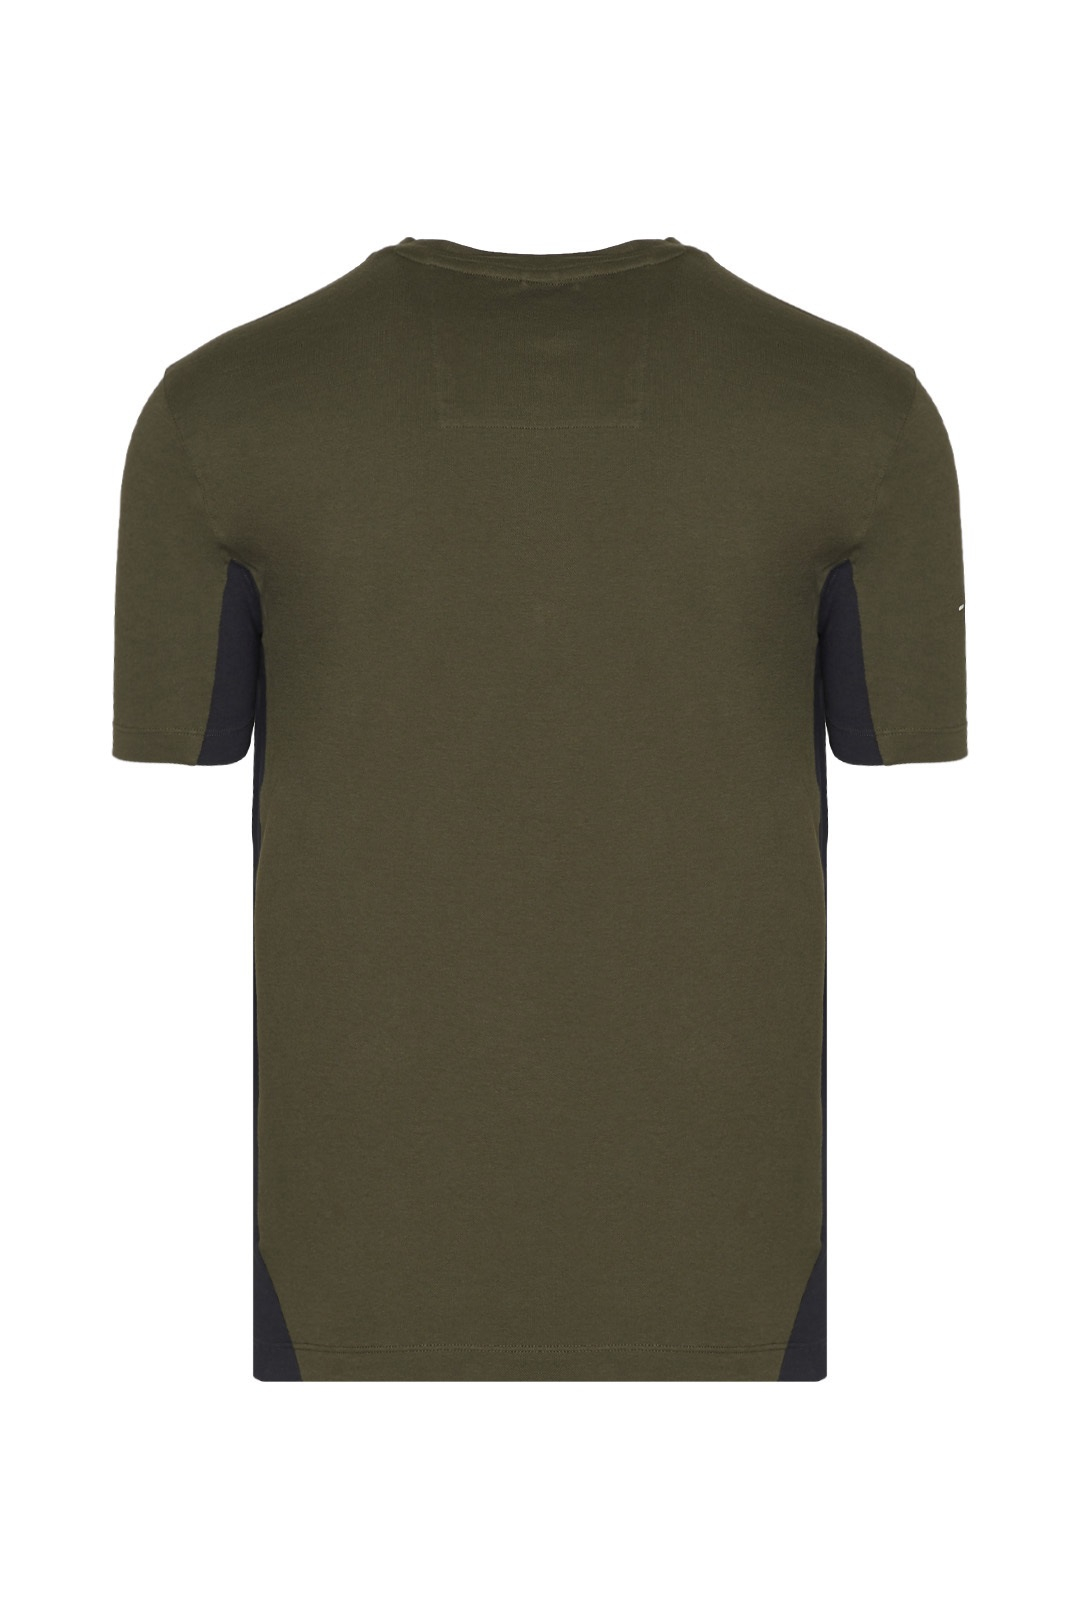 TS1847 - T-SHIRT M.C. ACTIVE 2